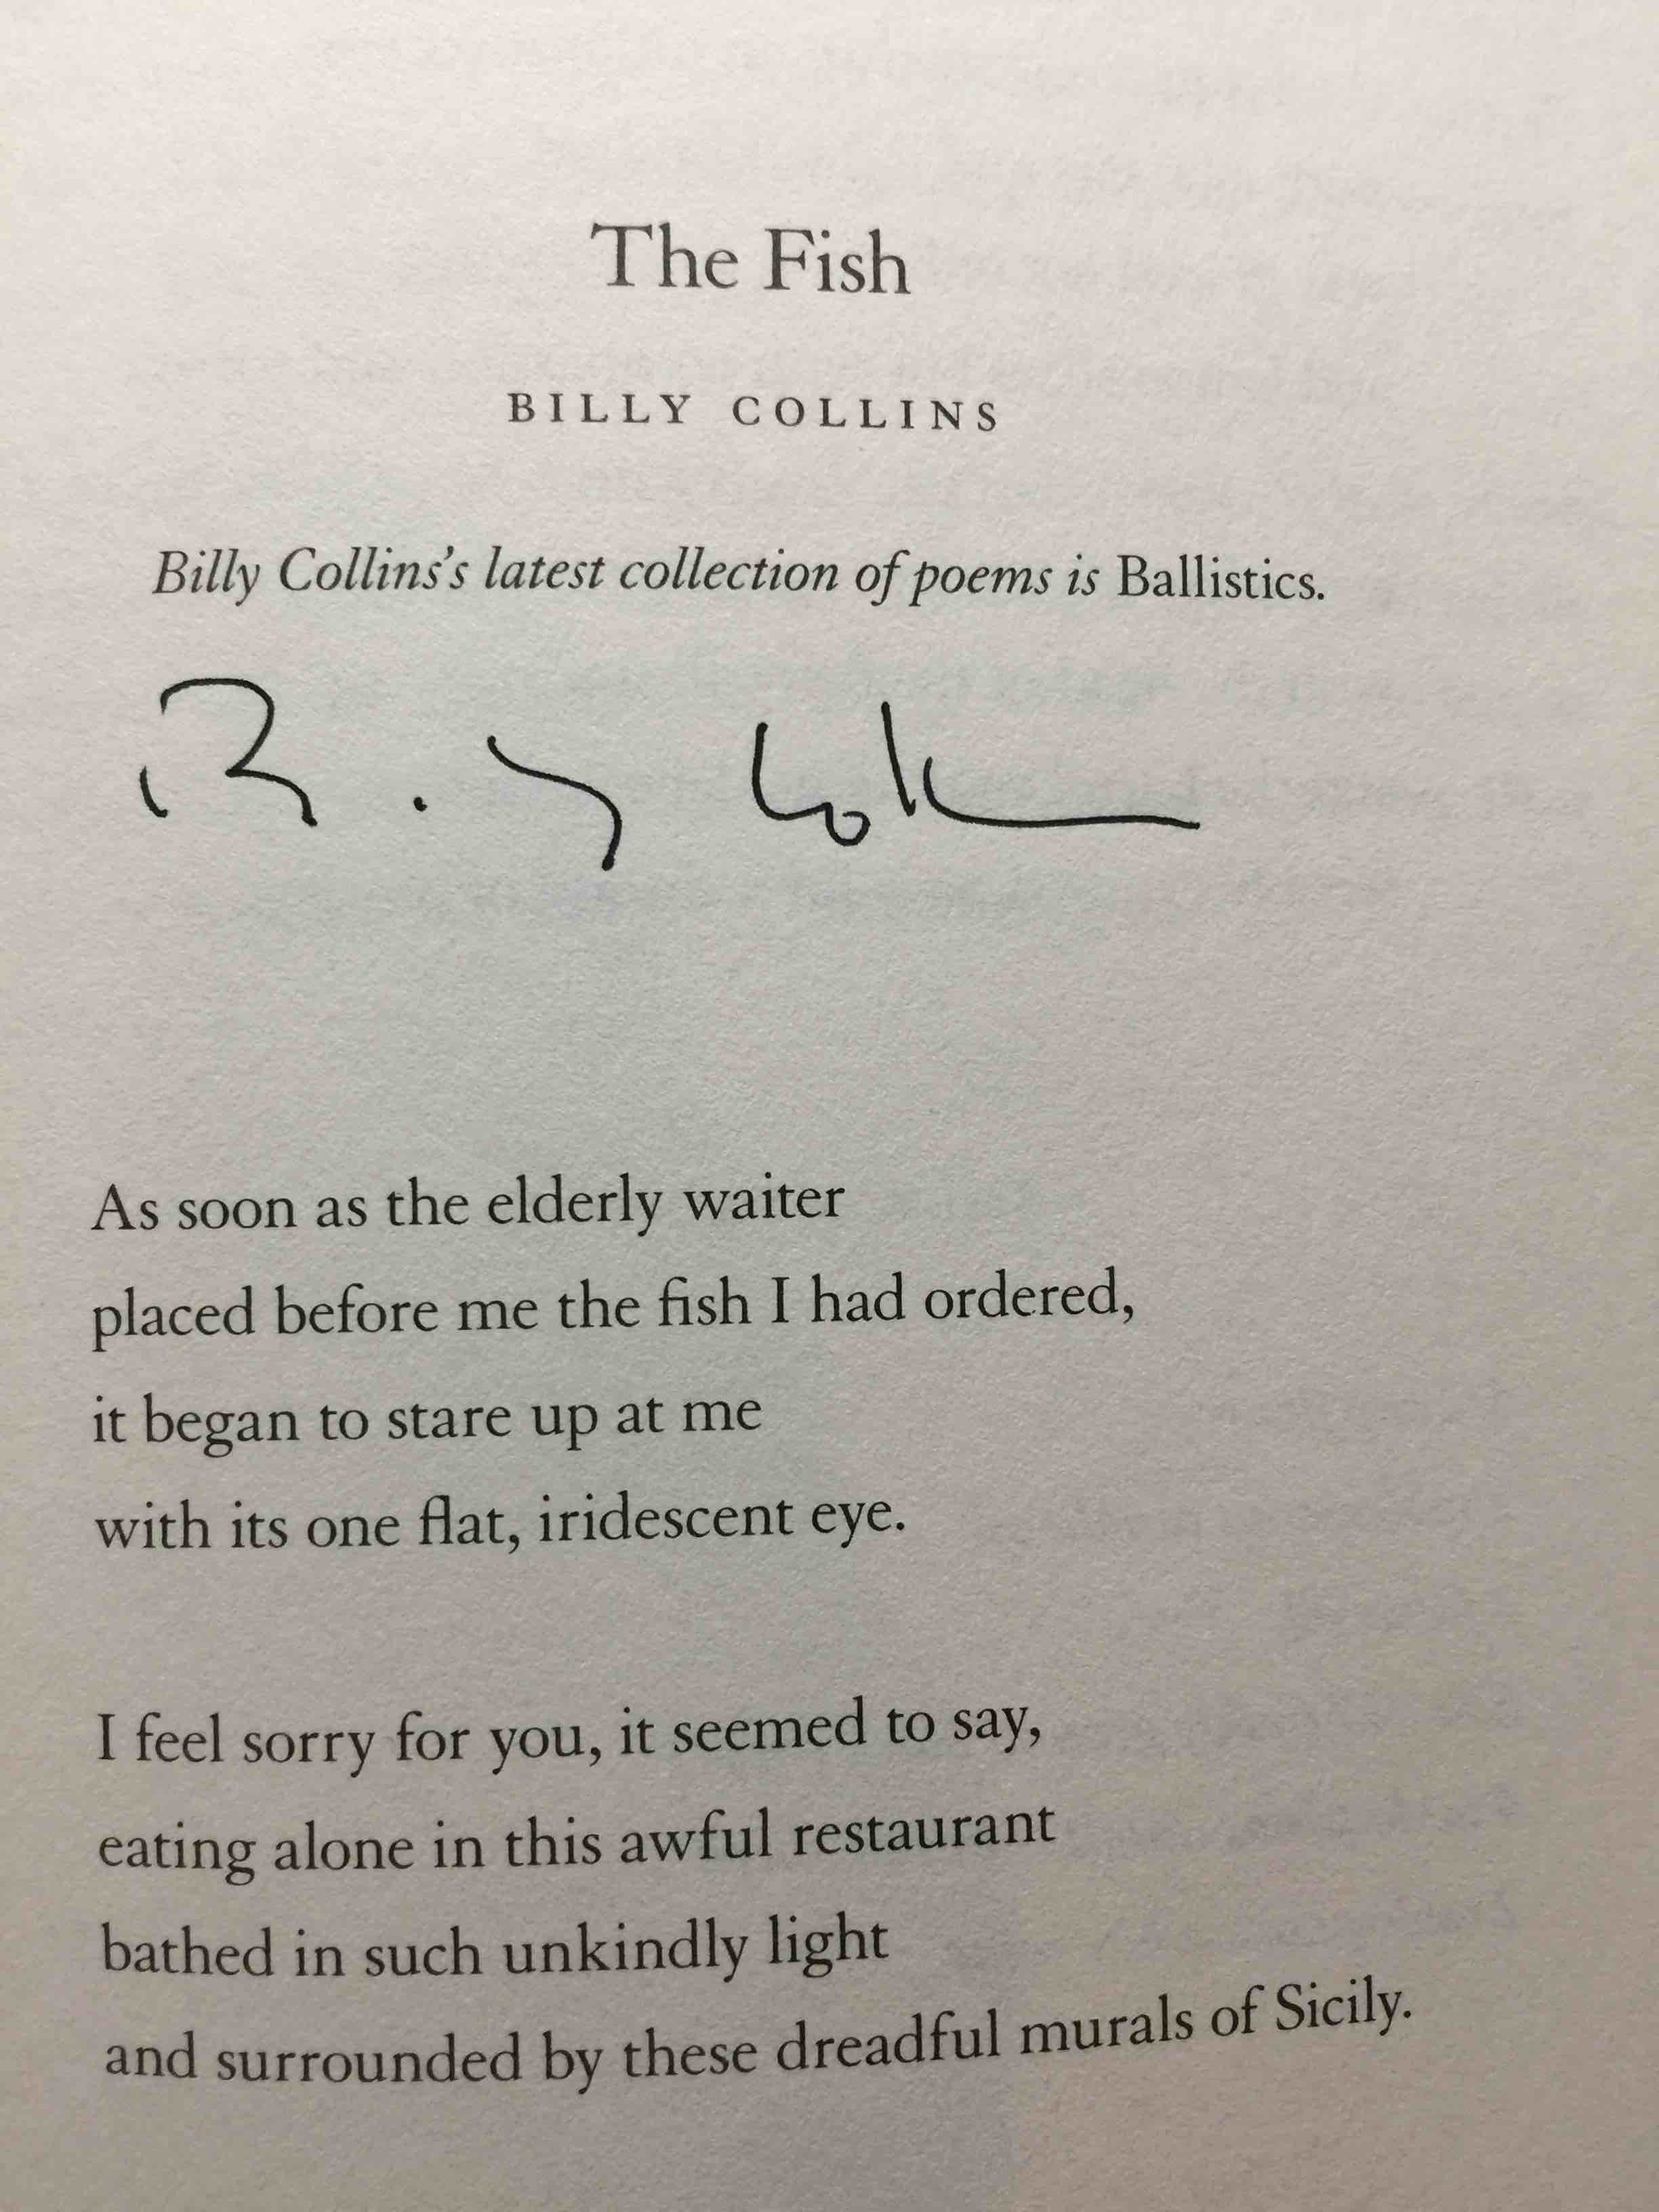 HESSER, AMANDA, EDITOR. BILLY COLLINS AND TOM PERROTTA, SIGNED. - EAT, MEMORY: Great Writers at the Table: A Collection of Essays from the New York Times.